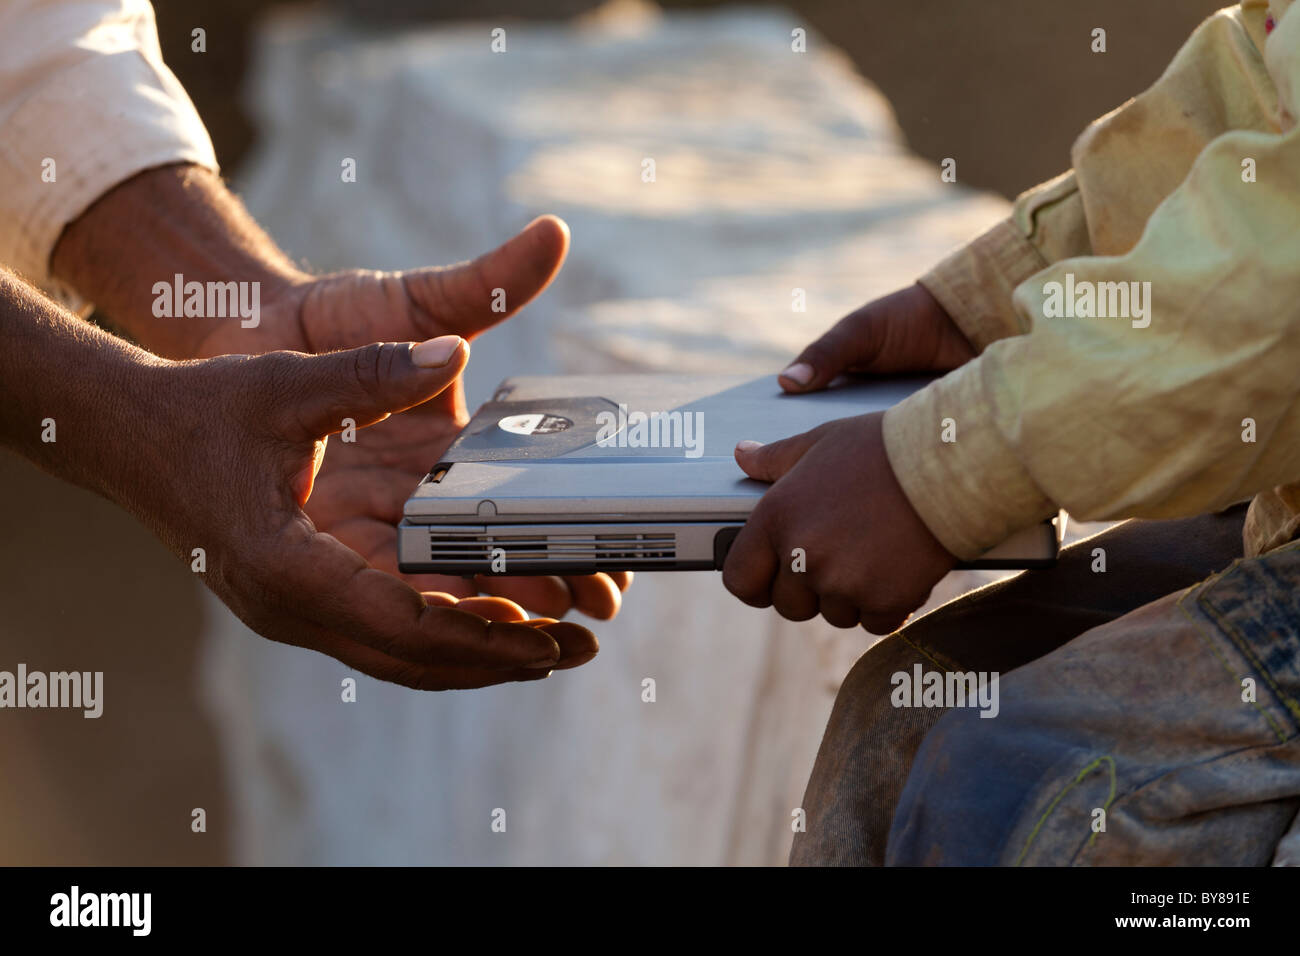 India, Rajasthan, Jodhpur, tribesman's hand about to receive laptop from young boy's hand - Stock Image